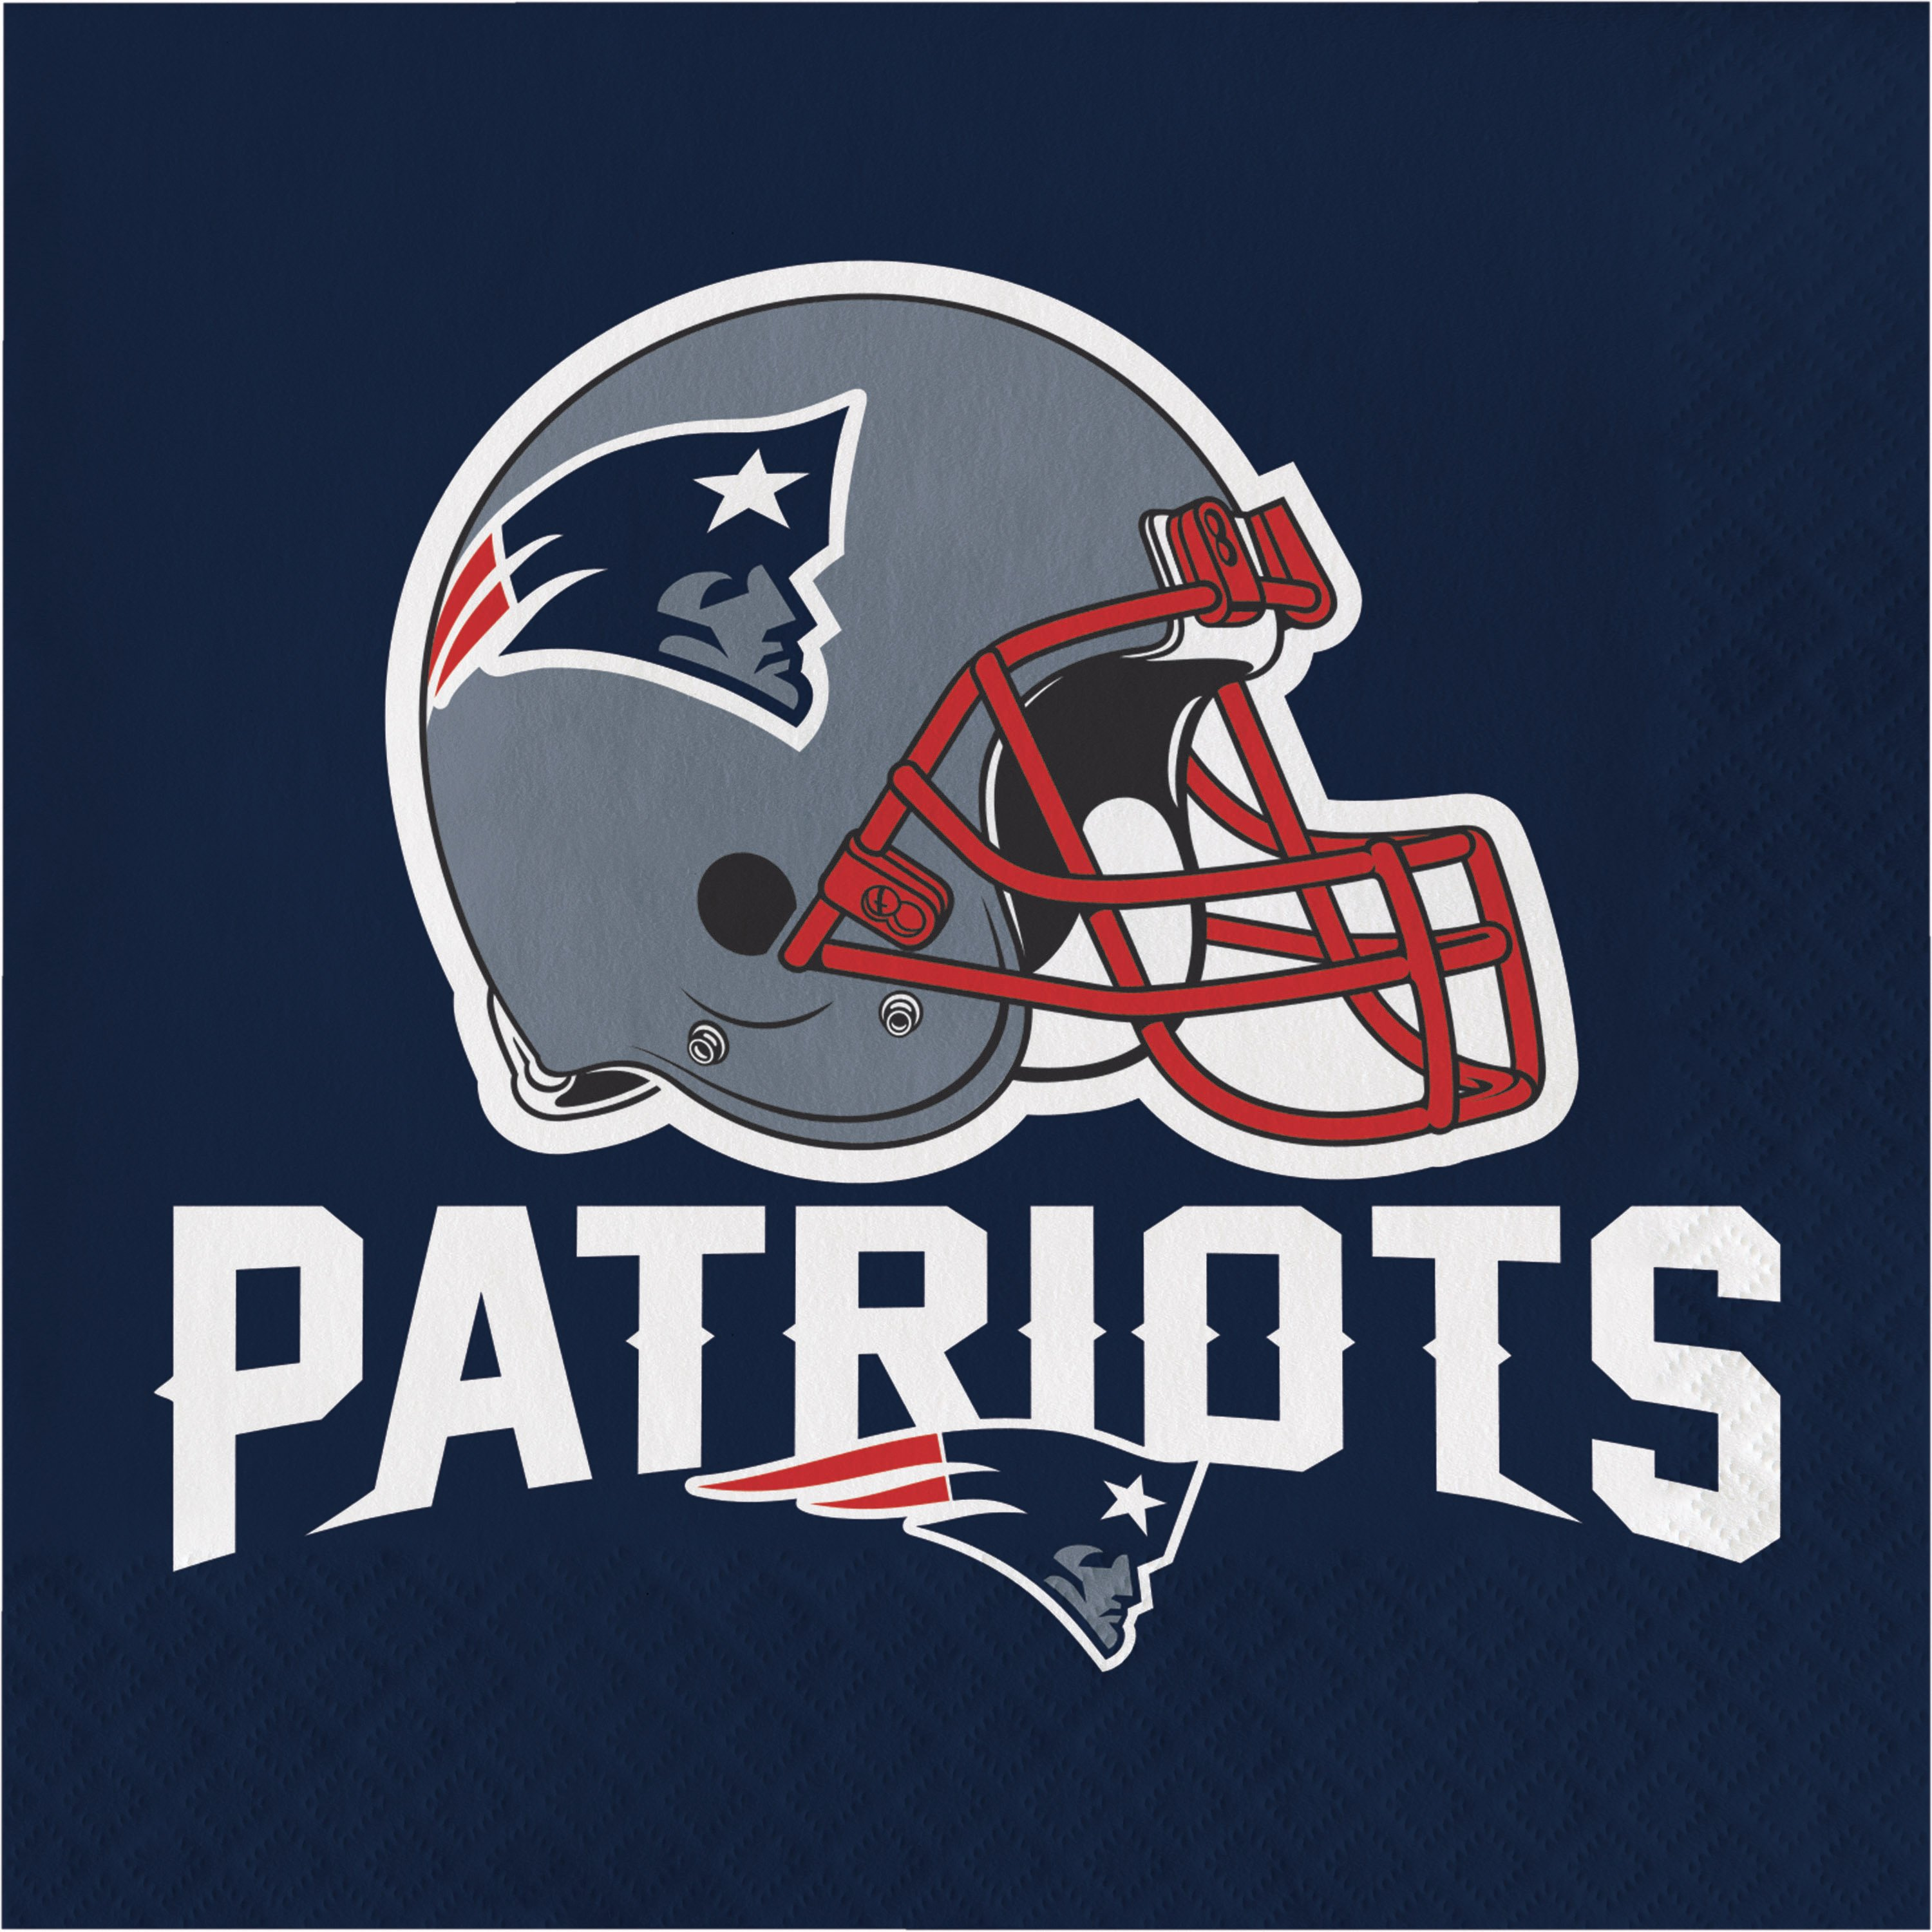 Nfl New England Patriots 12 7 8 In 2020 New England Patriots Helmet New England Patriots Logo Nfl New England Patriots